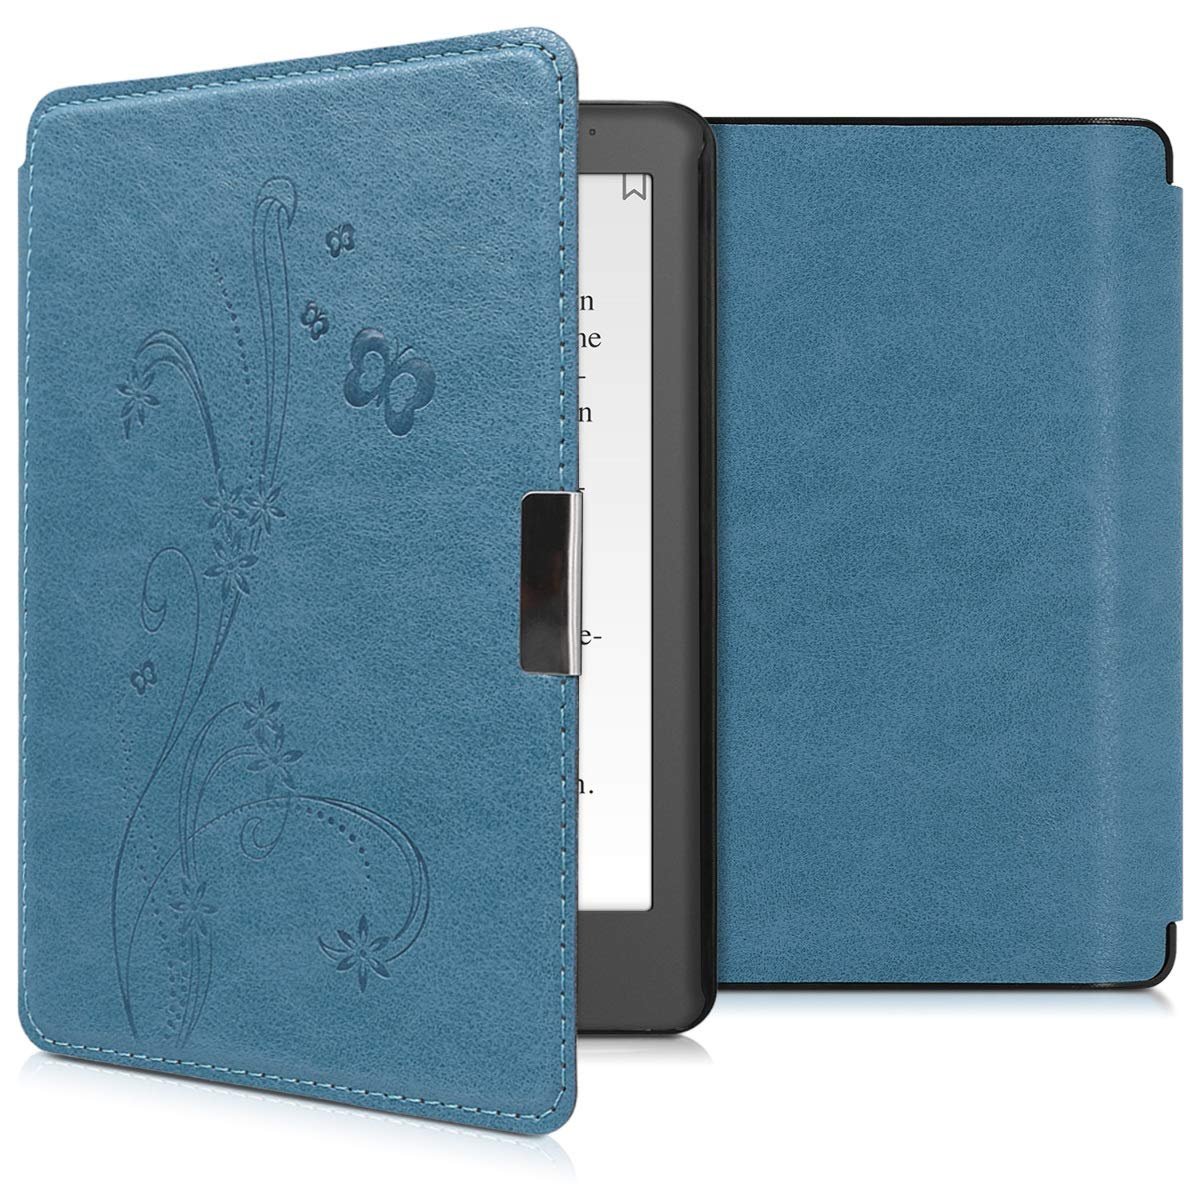 kwmobile Case for Kobo Aura Edition 2 - Book Style PU Leather Protective e-Reader Cover Folio Case - Blue Grey Black KW-Commerce 44409.12_m001173